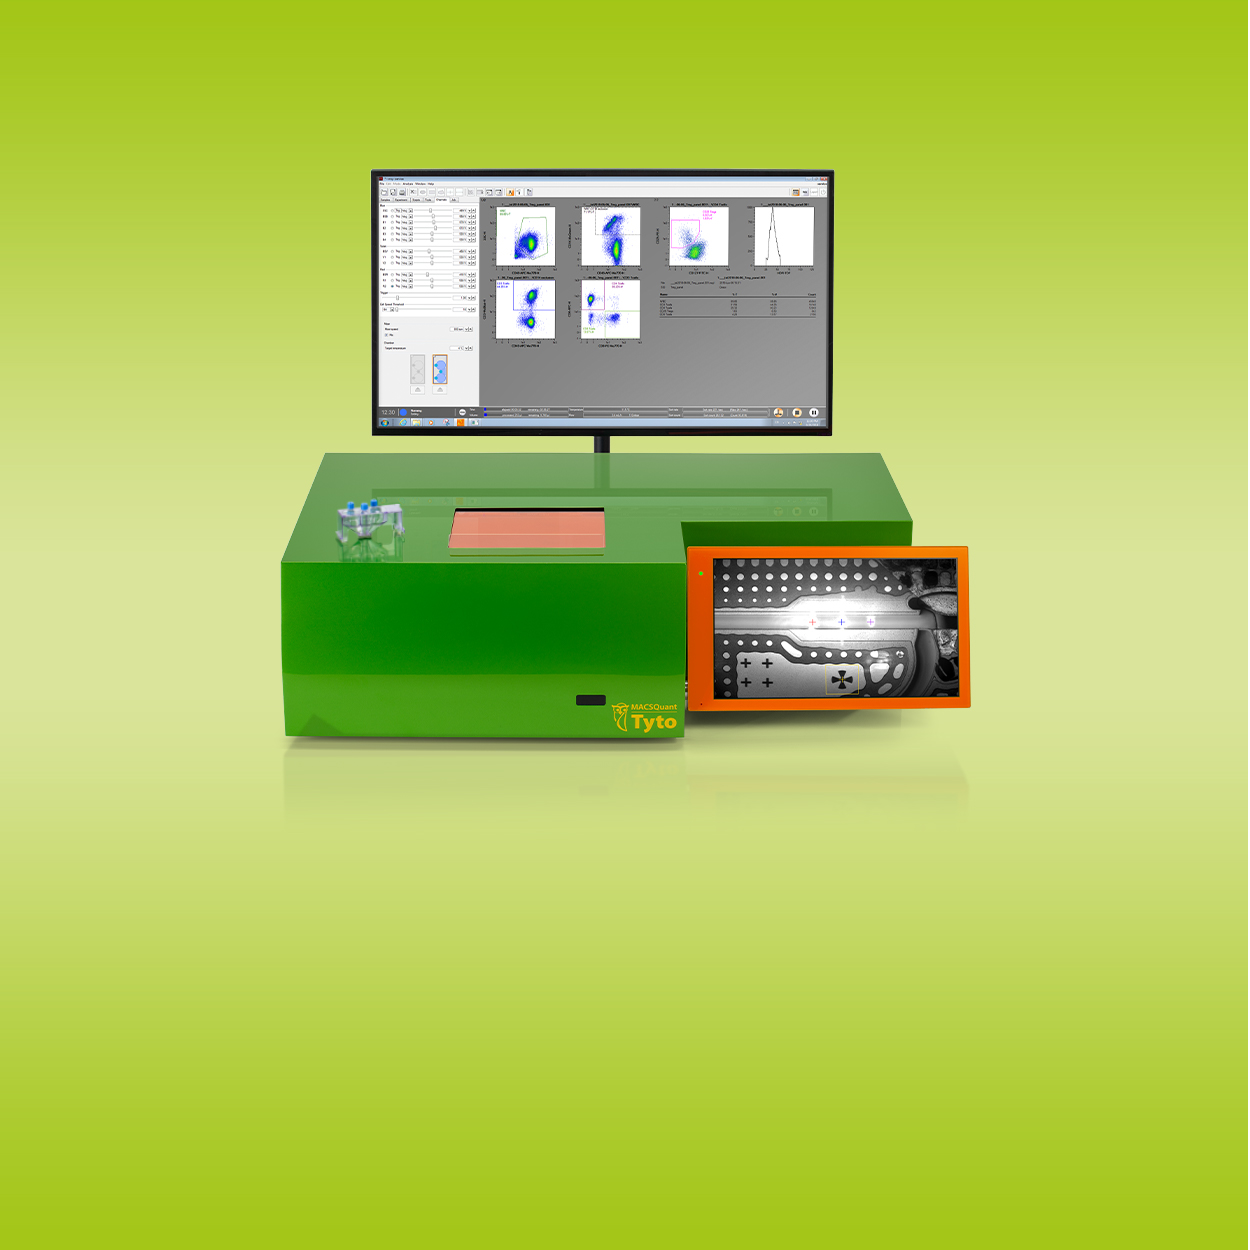 <h3>MACSQuant Tyto Cell Sorter</h3>